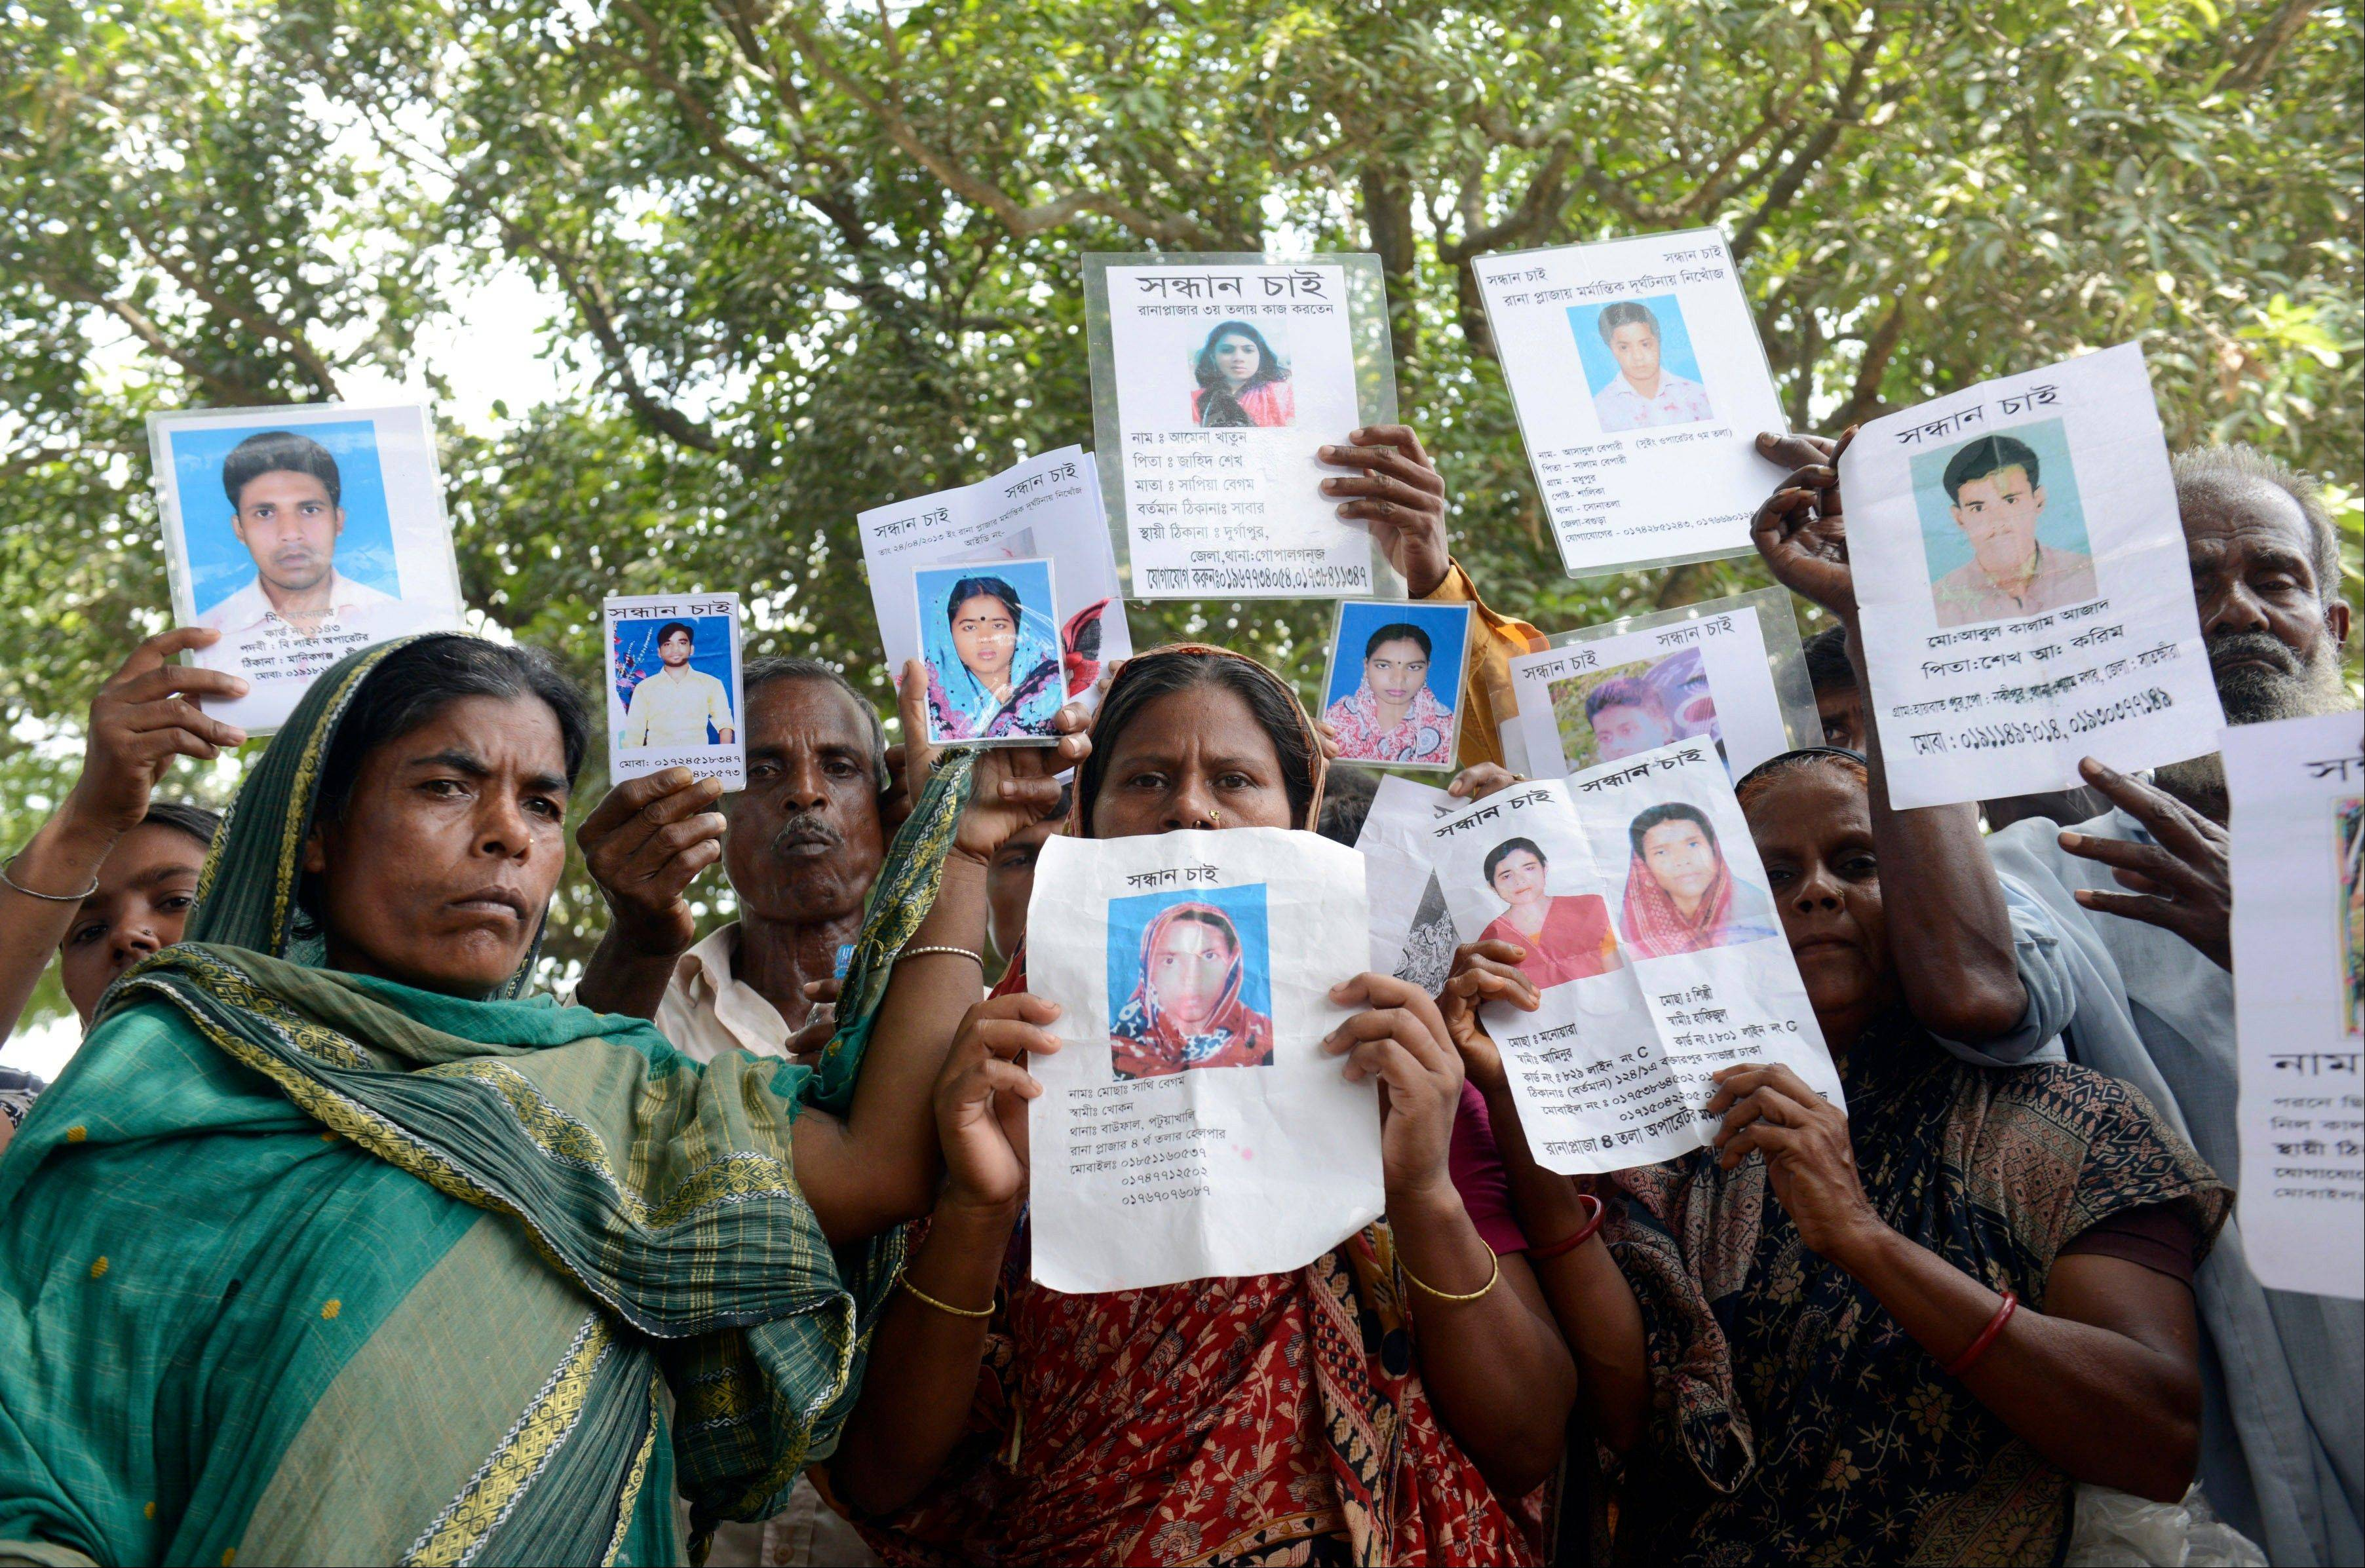 Relatives hold up portraits of many still missing from last week's collapse of a garment factory building in Bangladesh. Rescuers found more bodies in the concrete debris of the collapsed garment factory building Thursday, bringing the toll to 430 confirmed dead. Another 149 people are still missing in what has become the worst disaster for Bangladesh's $20 billion-a-year garment industry that supplies global retailers.